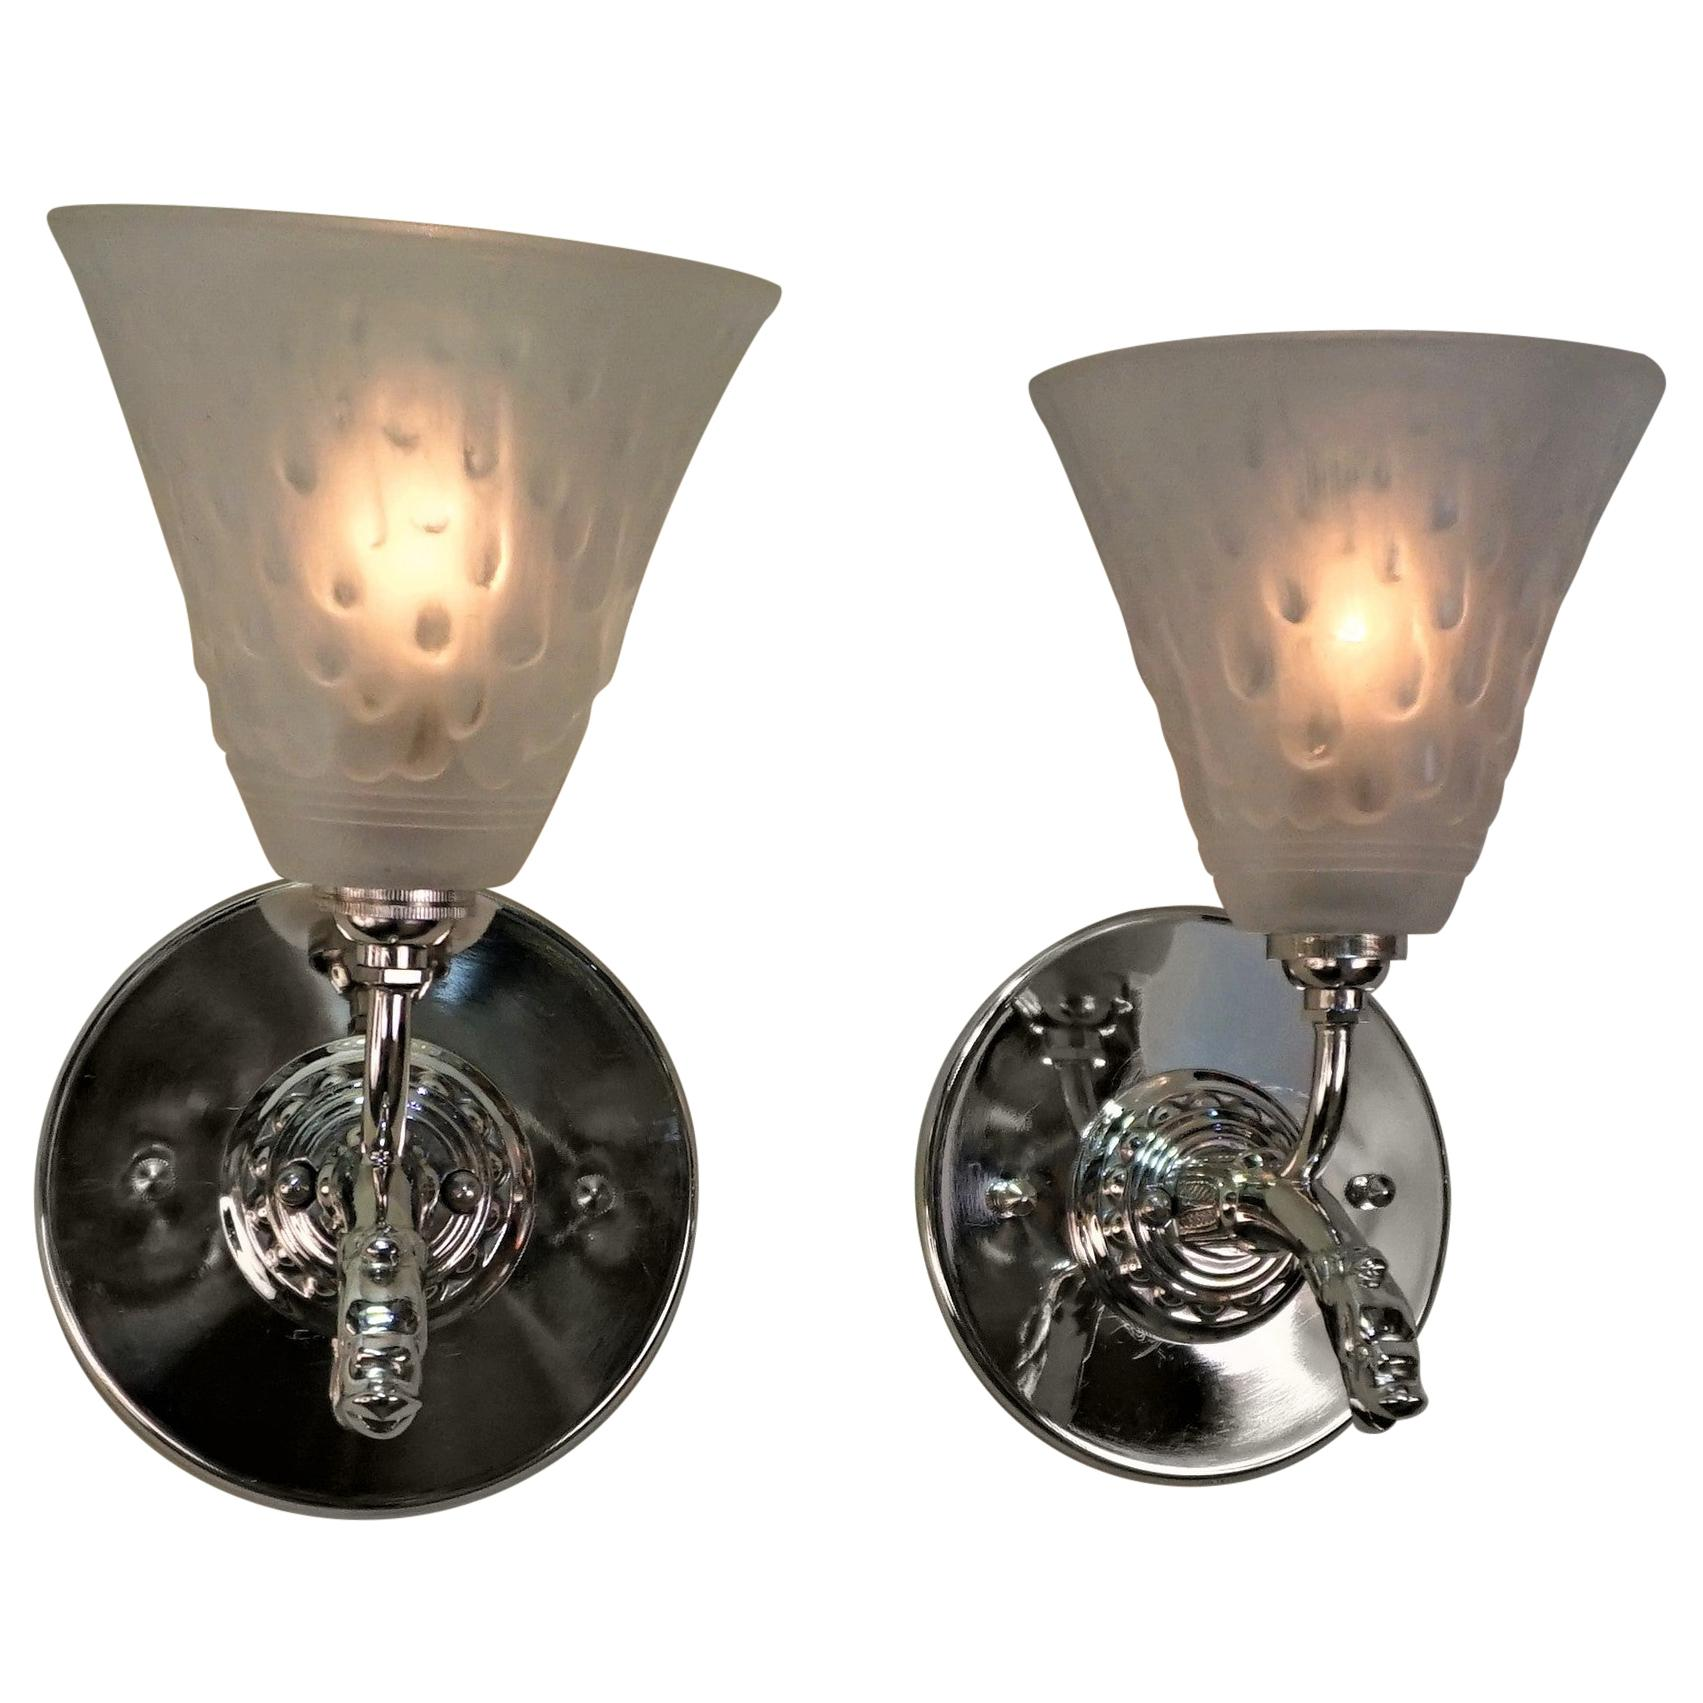 French Art Deco Wall Sconces by Muller Frères